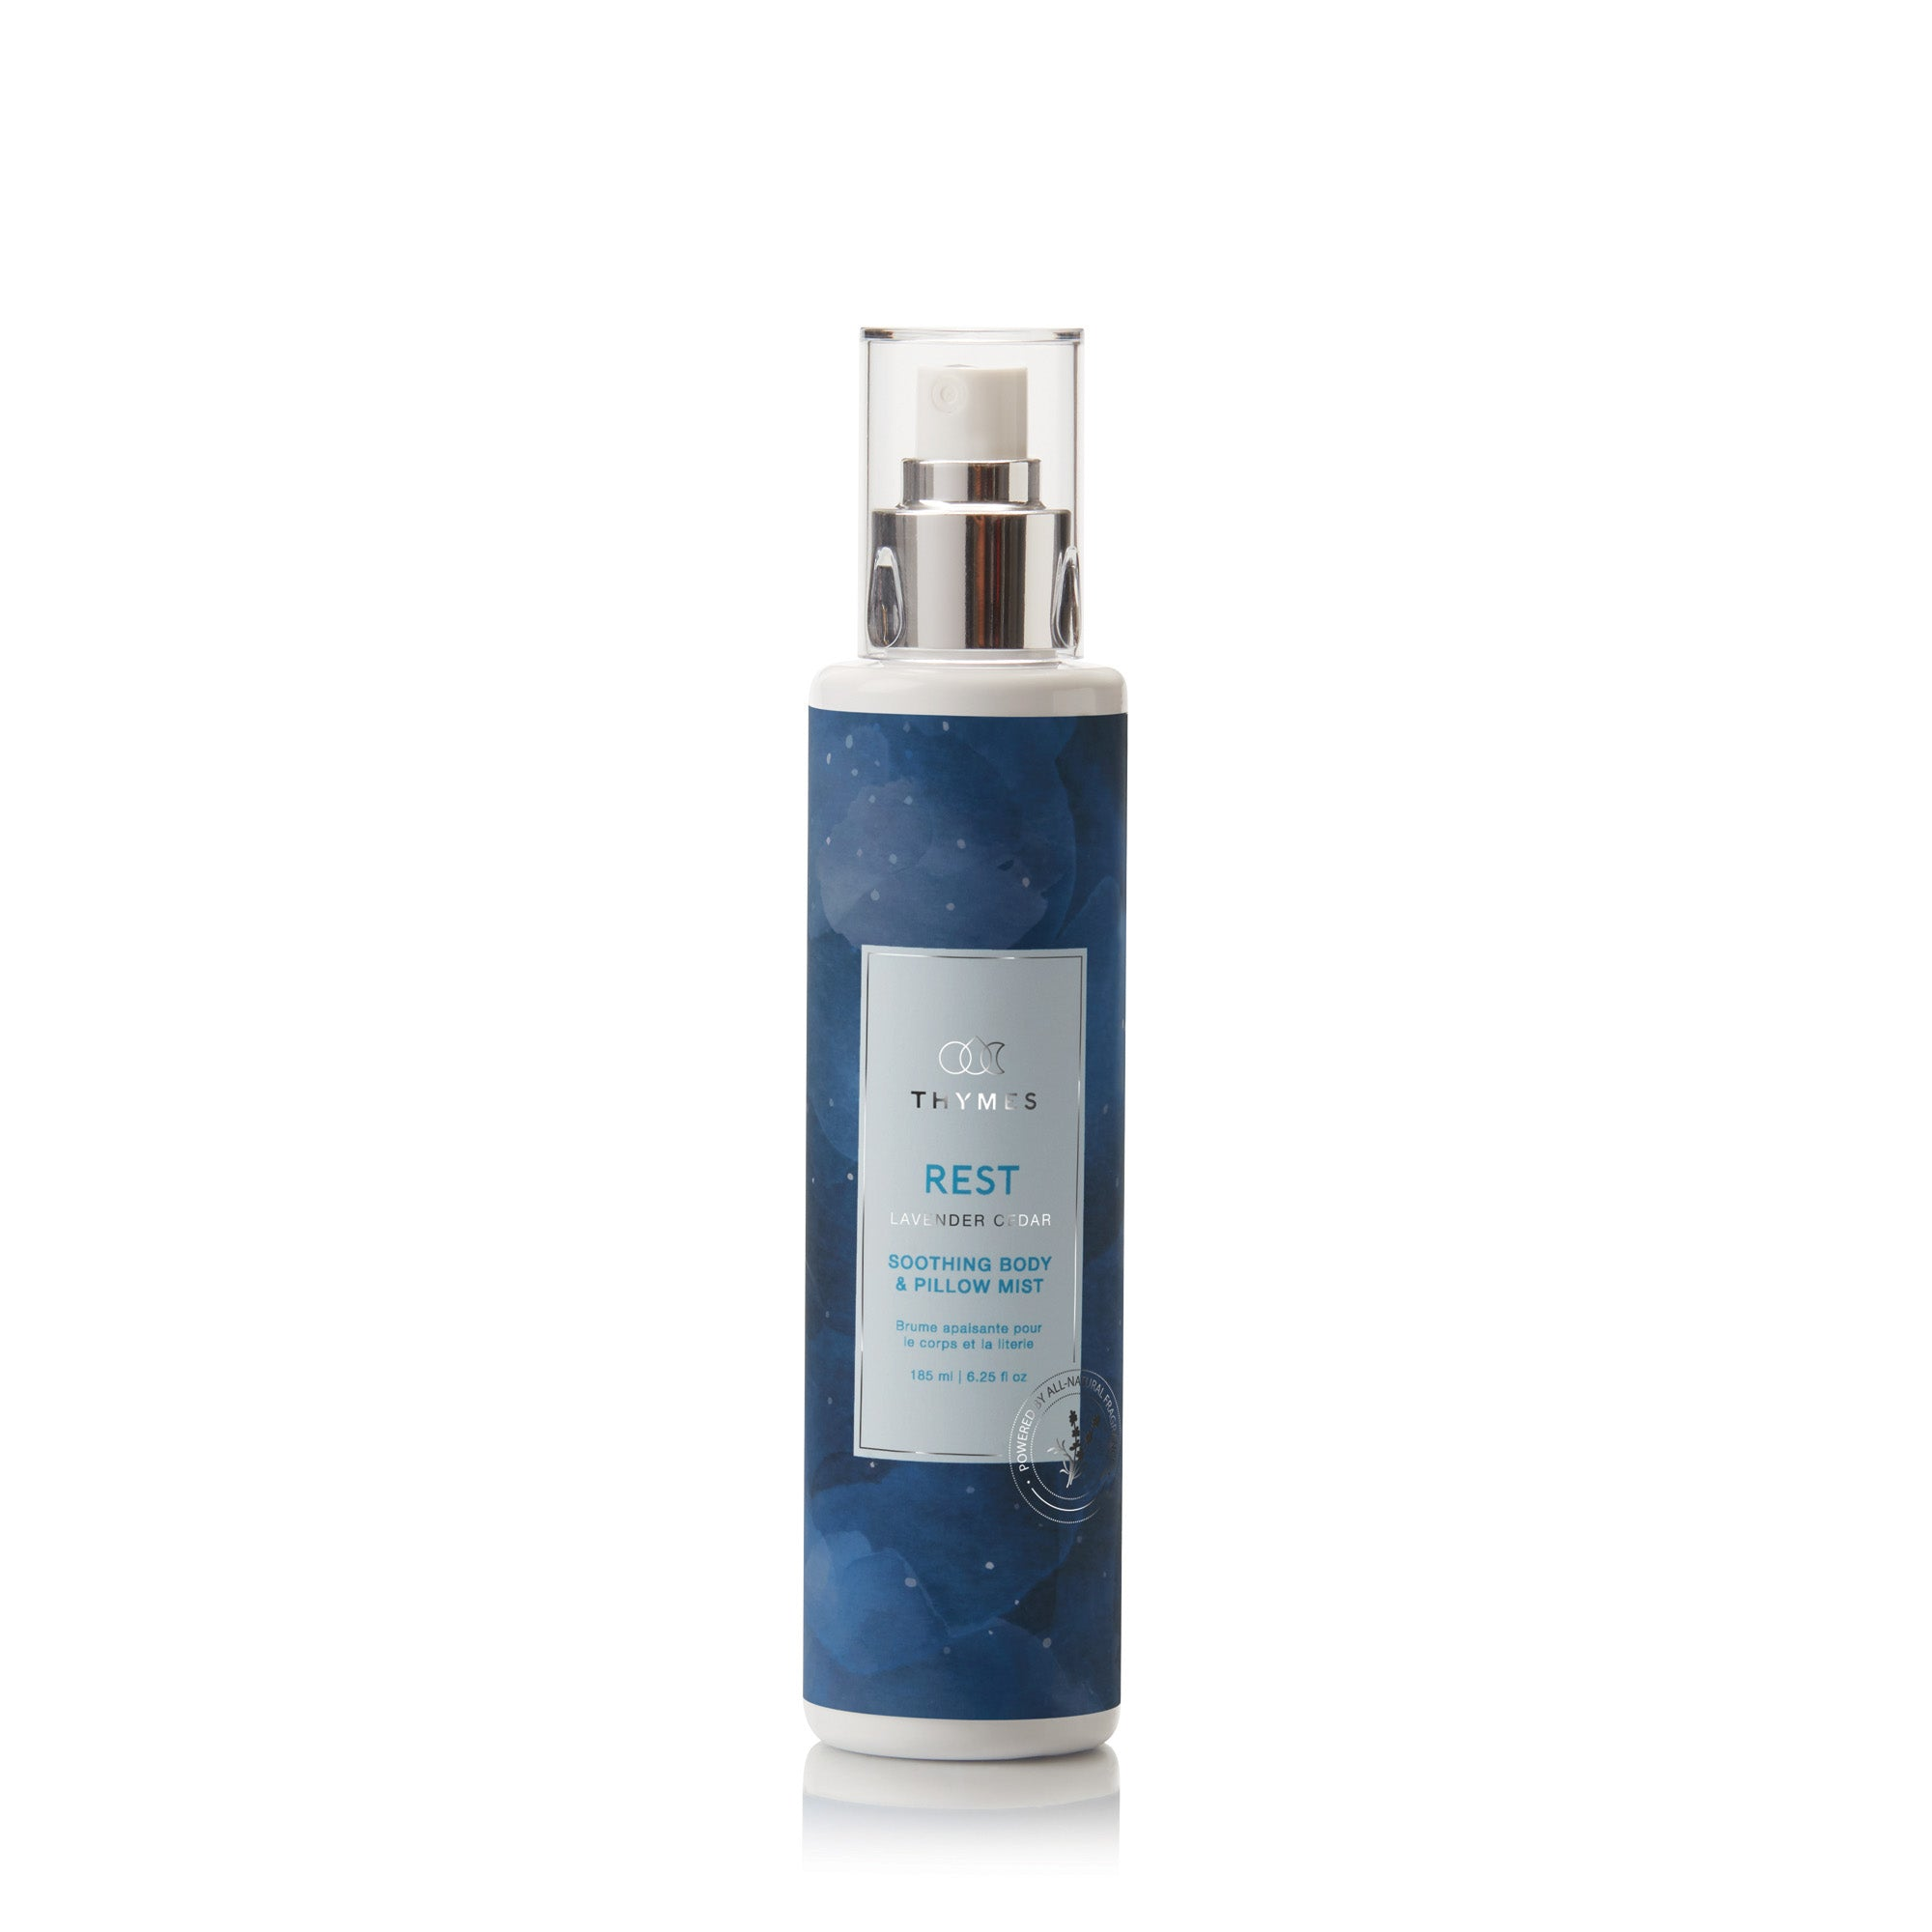 Rest Soothing Body and Pillow Spray